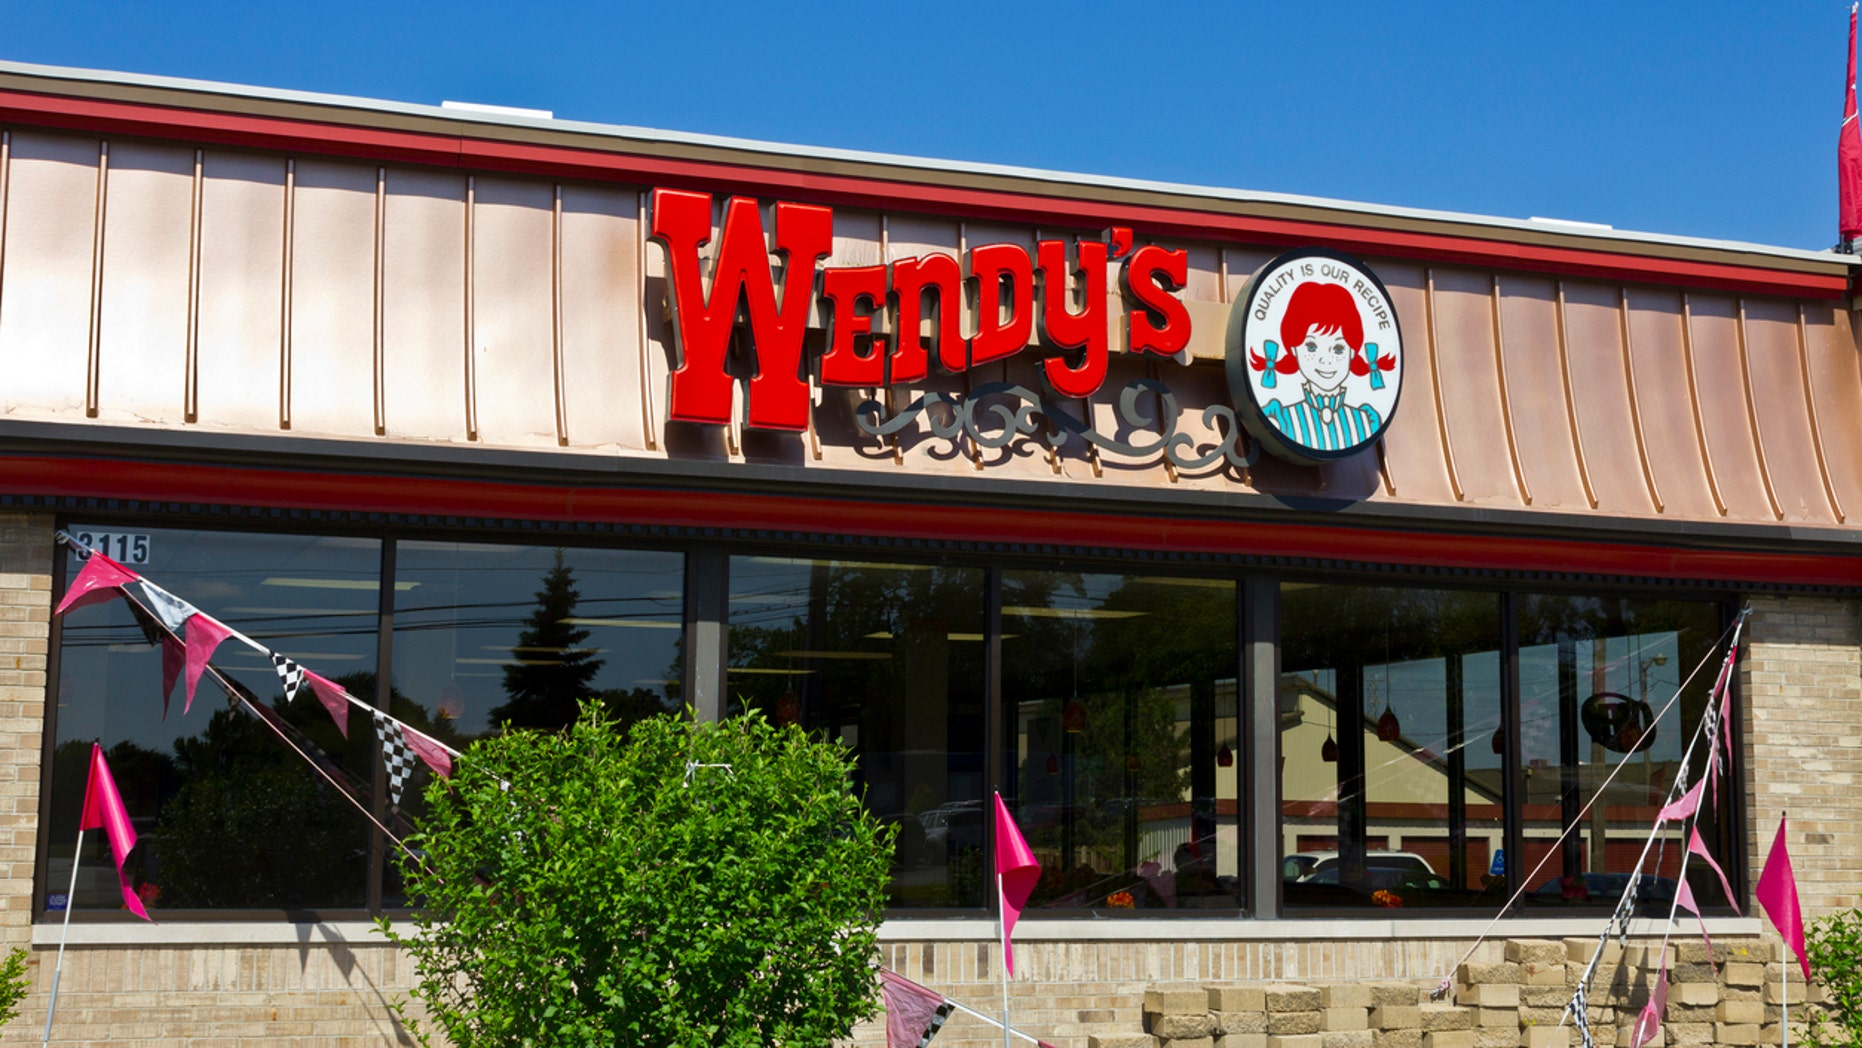 Twitter is getting a lot of enjoyment out of trolling Wendy's.